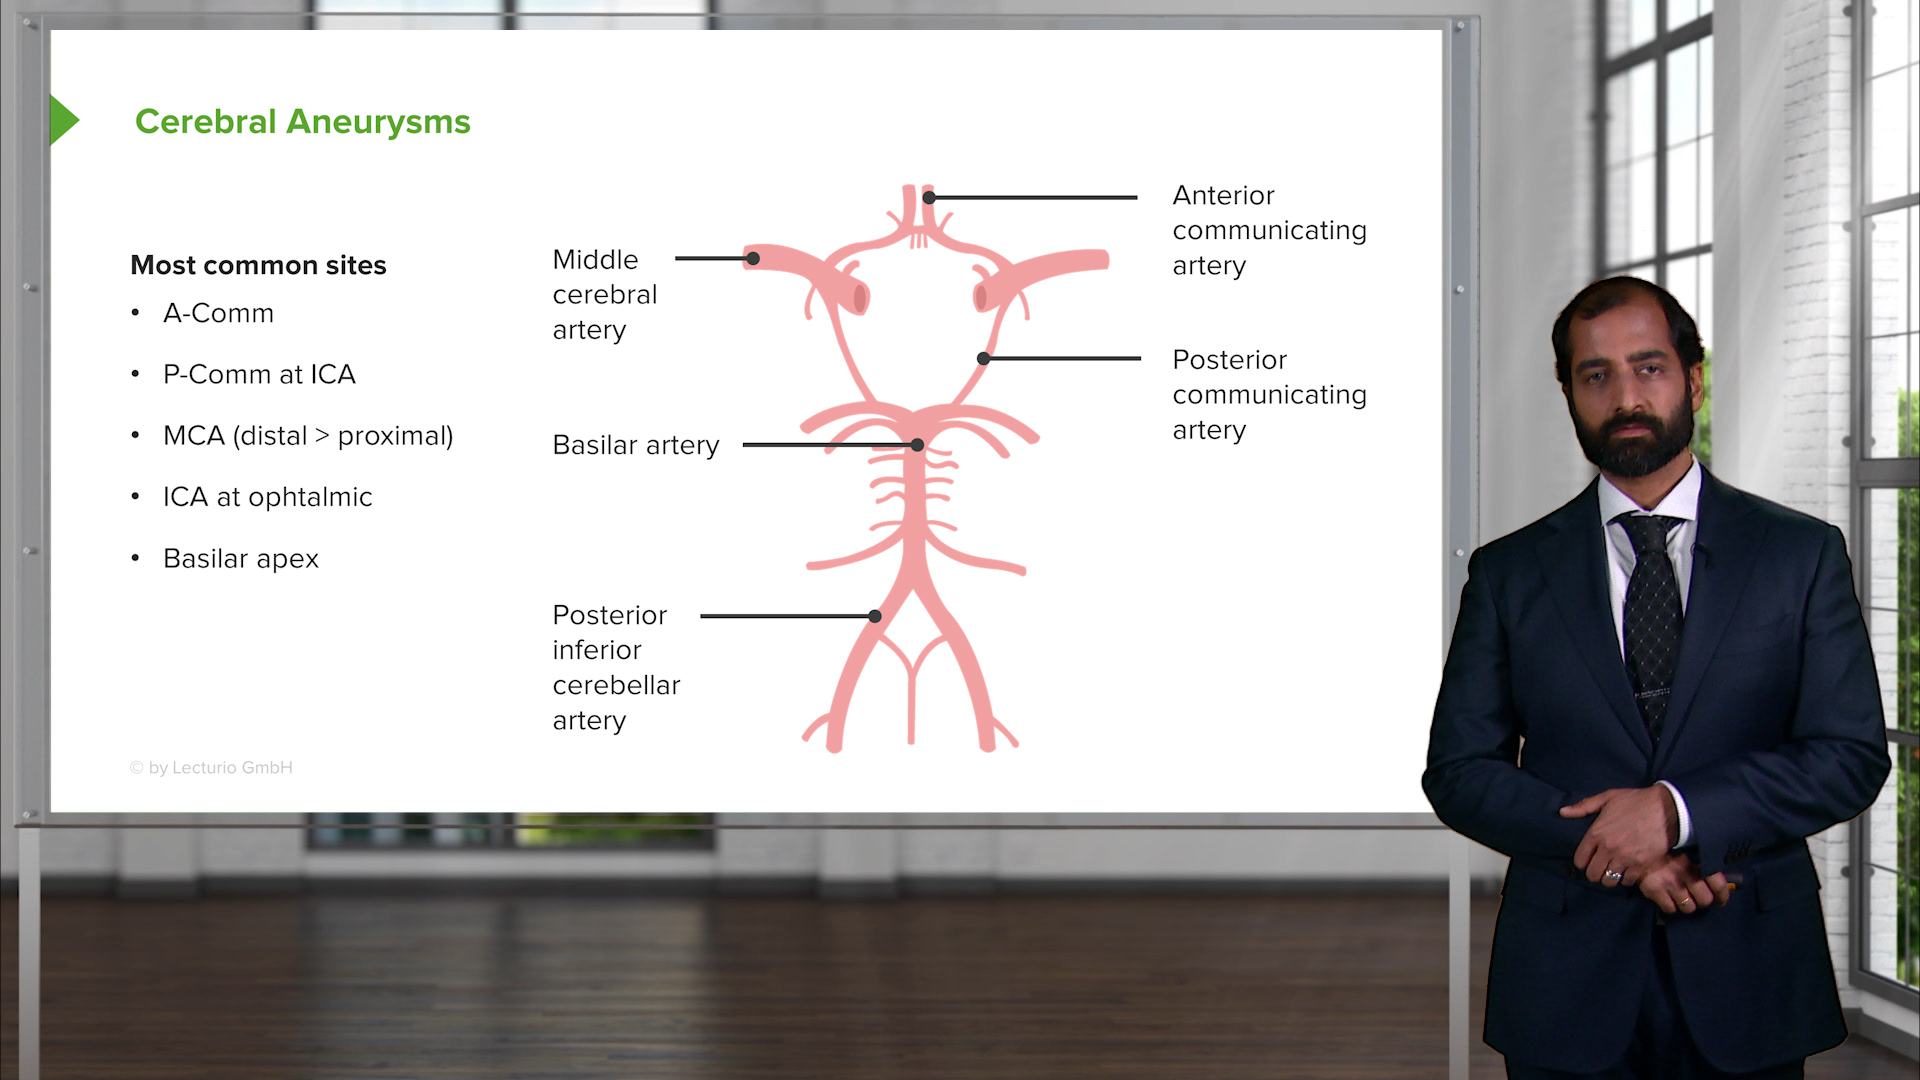 Clinical Neurology – Online USMLE Prep Course | Lecturio